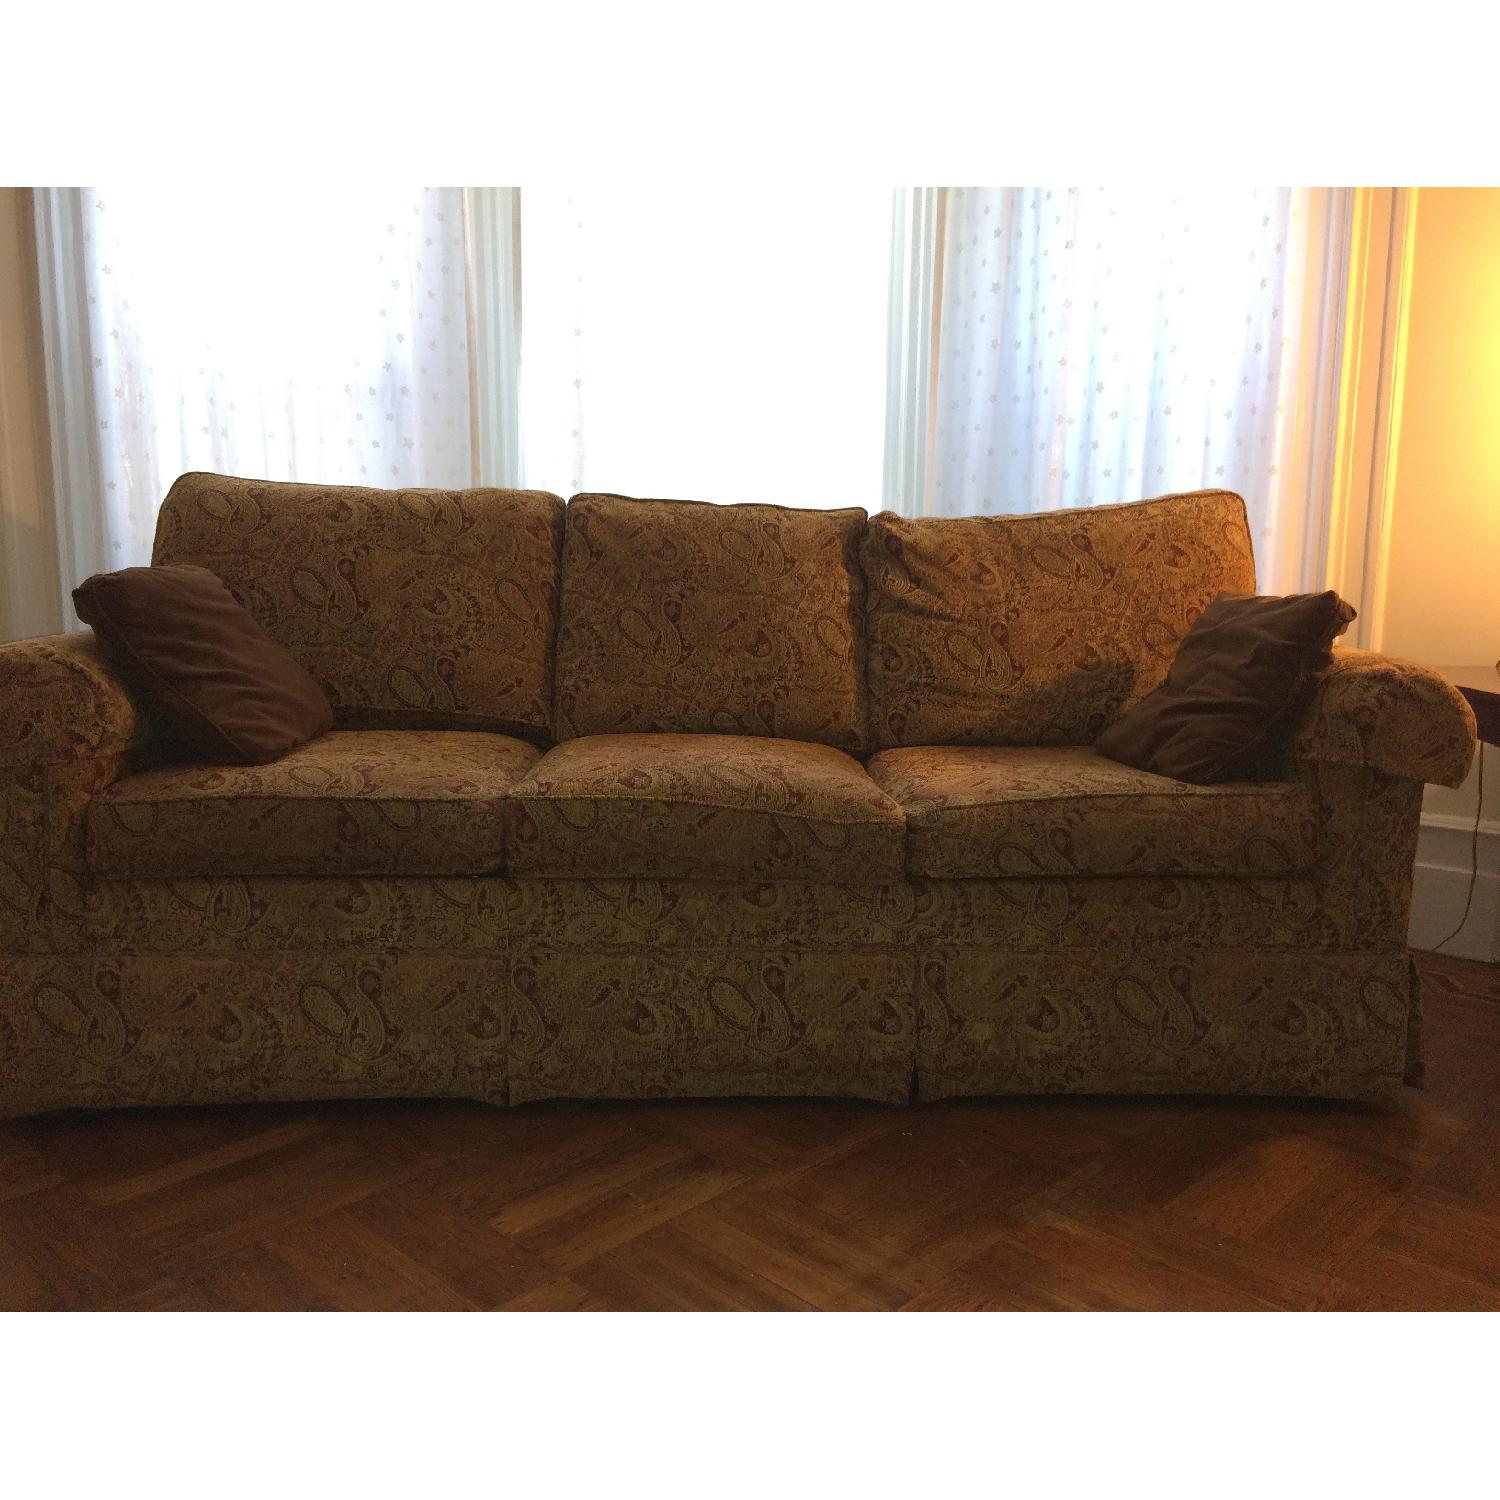 Ethan Allen Slipcovered Rolled Arm Sofa-0